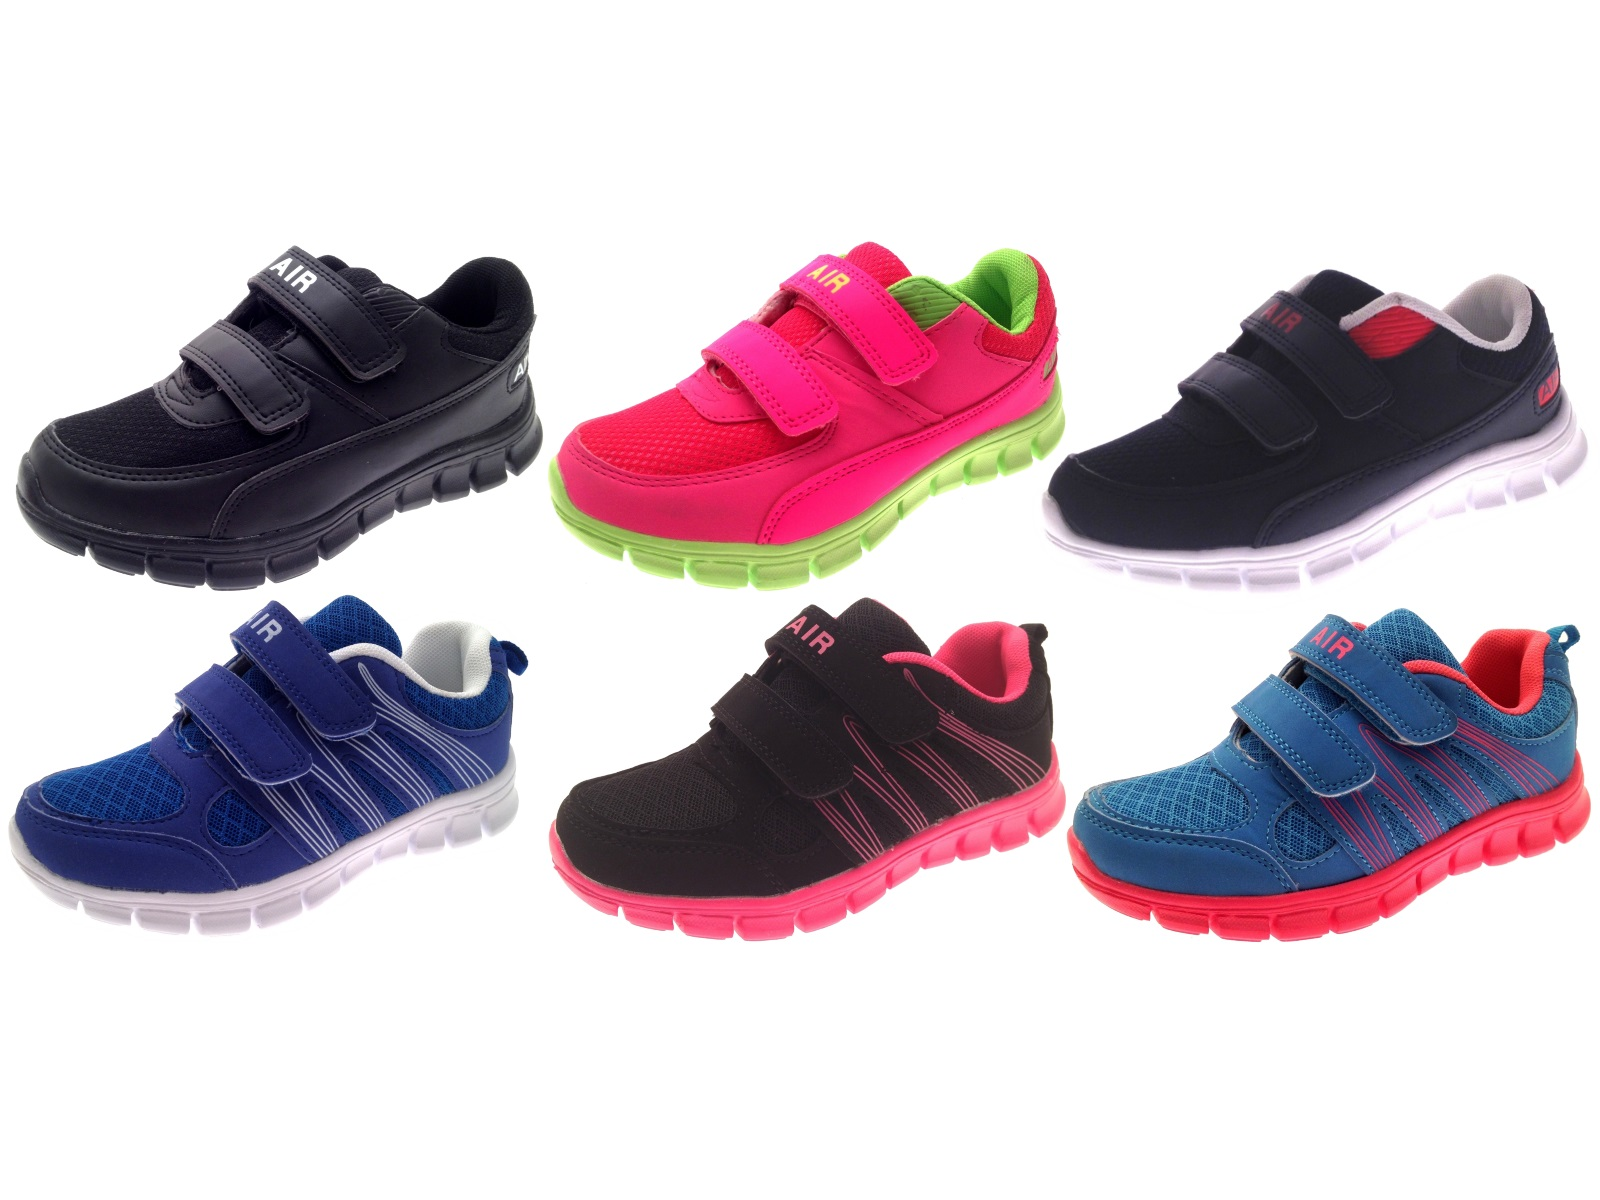 cozy fresh closer at authentic Kids Boys Girls Sports Trainers School Pumps Flat Running Shoes ...